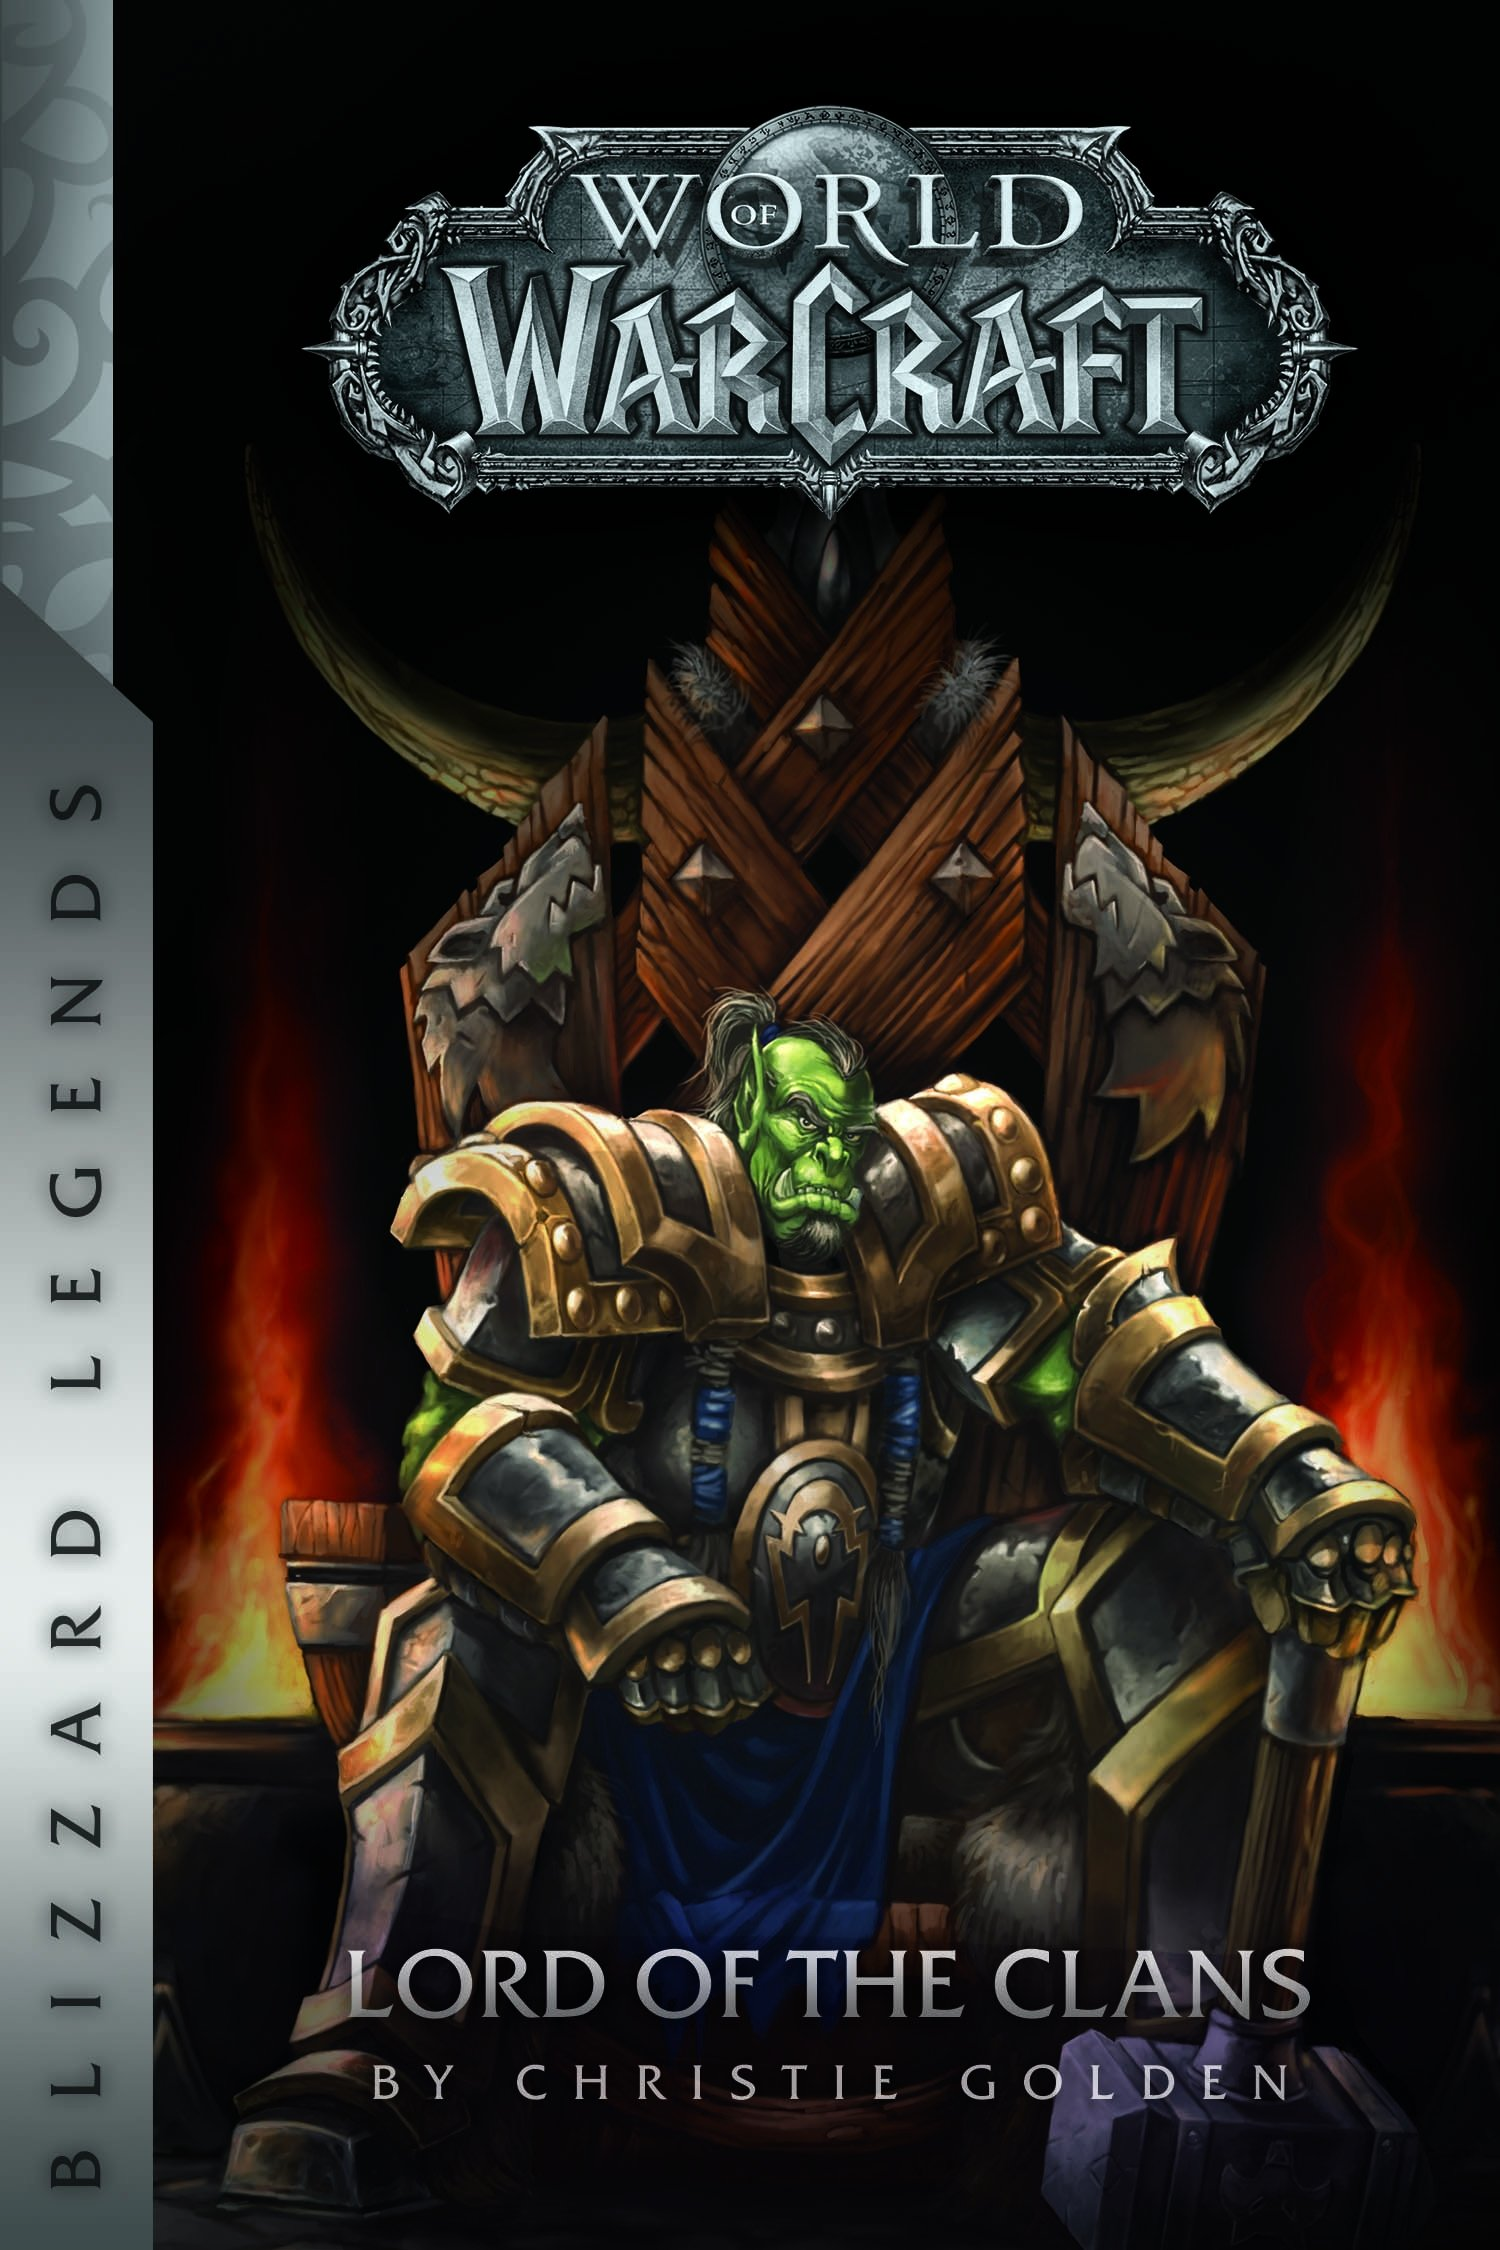 world of warcraft books order